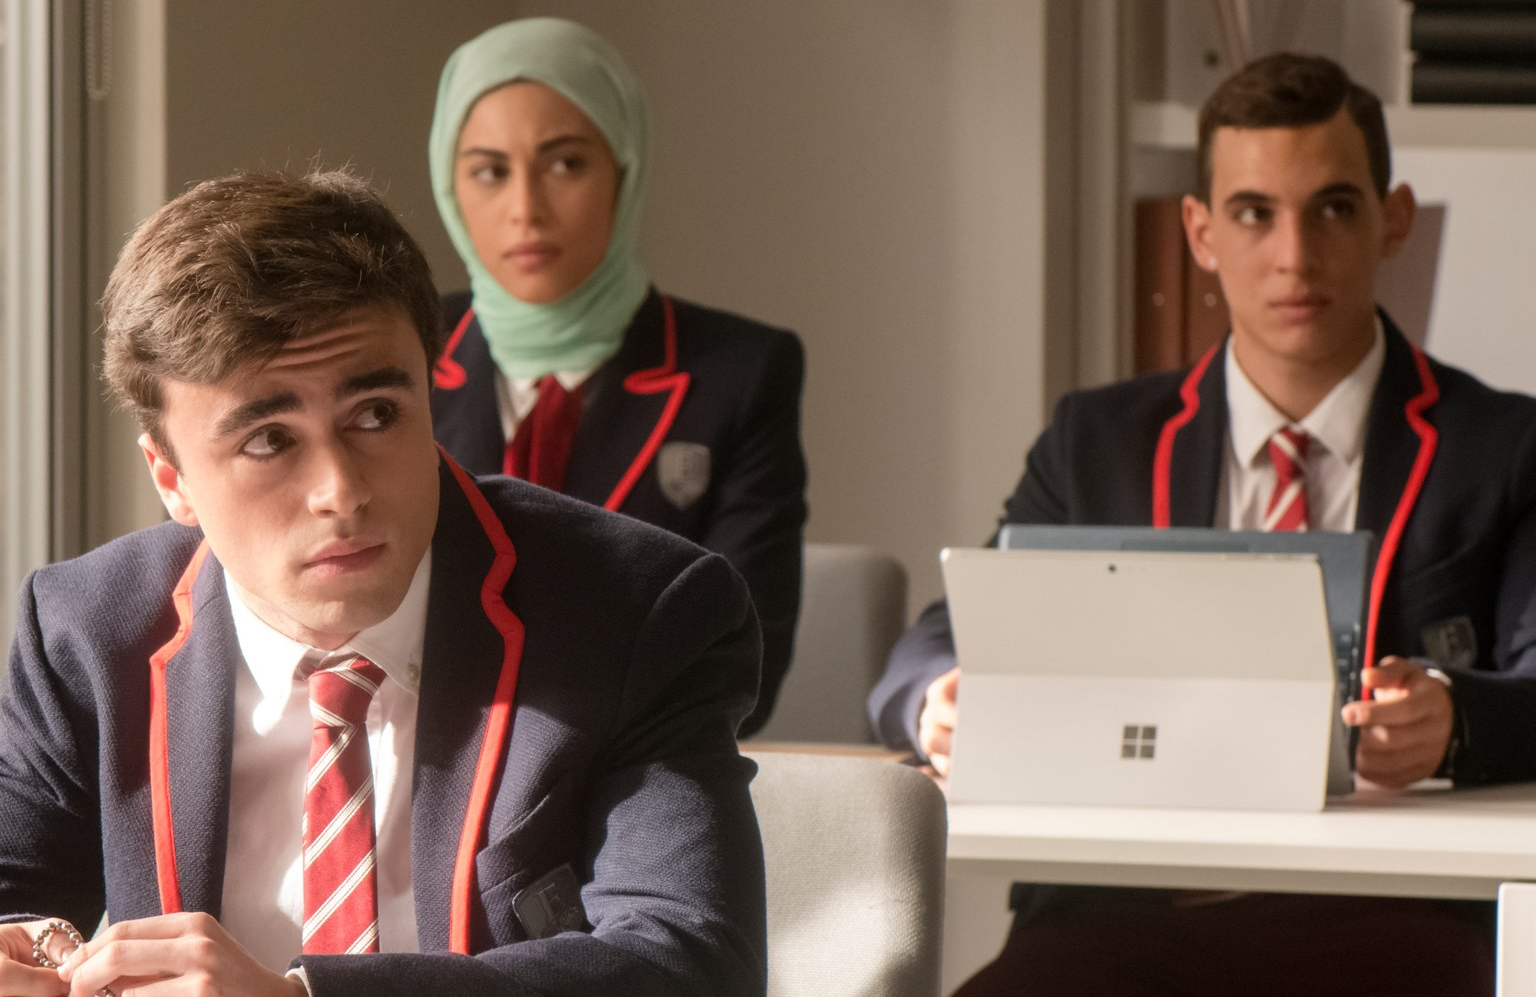 Itzan Escamilla as Samuel, Mina El Hammani as Nadia, and Miguel Herrán as Christian in Elite. (Manuel Fernandez-Valdes/Netflix)